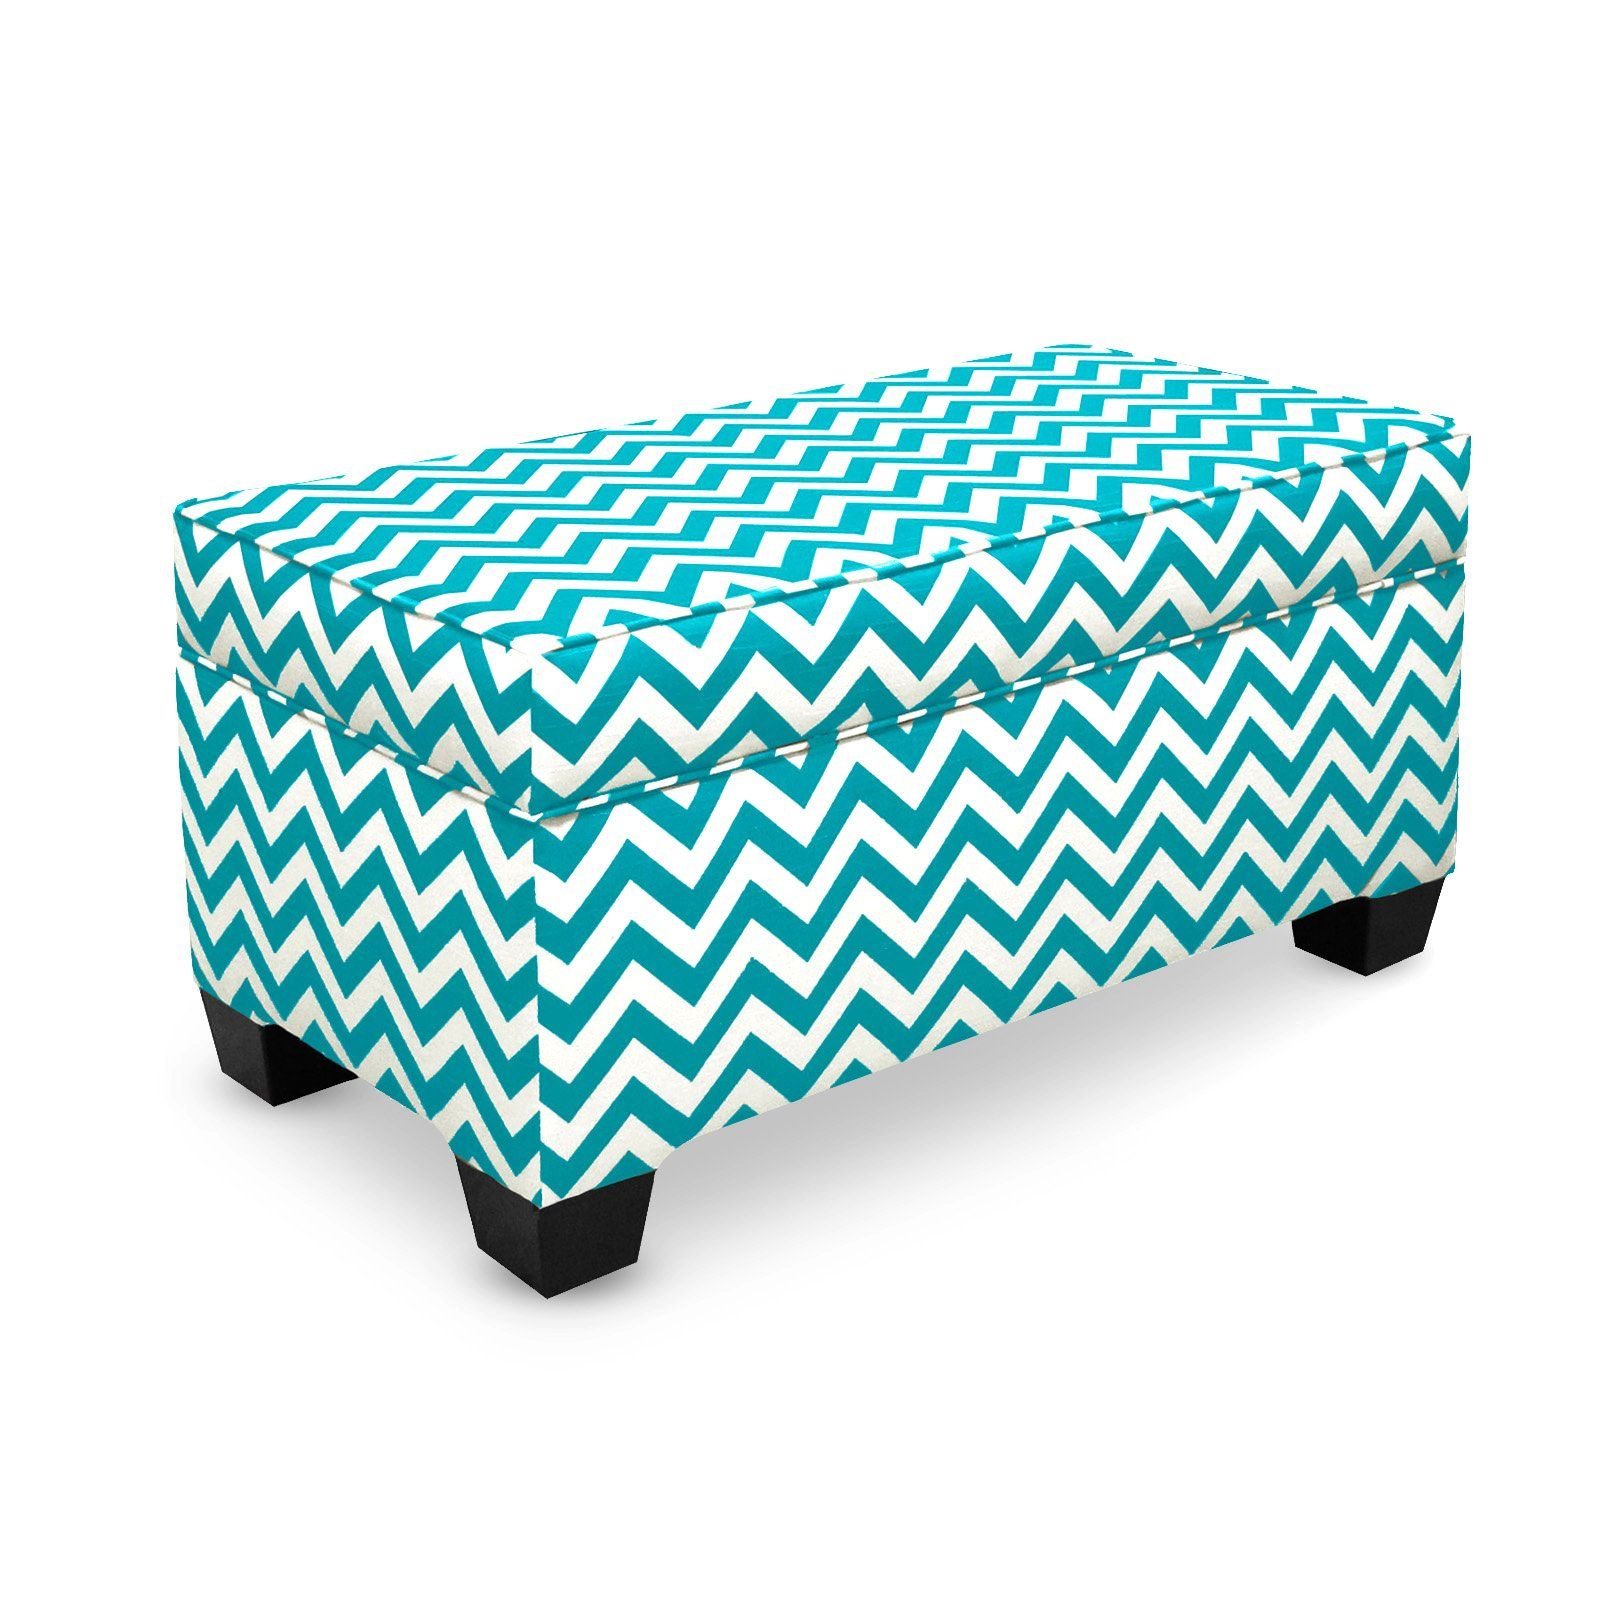 Cool Skyline Zig Zag Teal And White Upholstered Storage Bench Andrewgaddart Wooden Chair Designs For Living Room Andrewgaddartcom